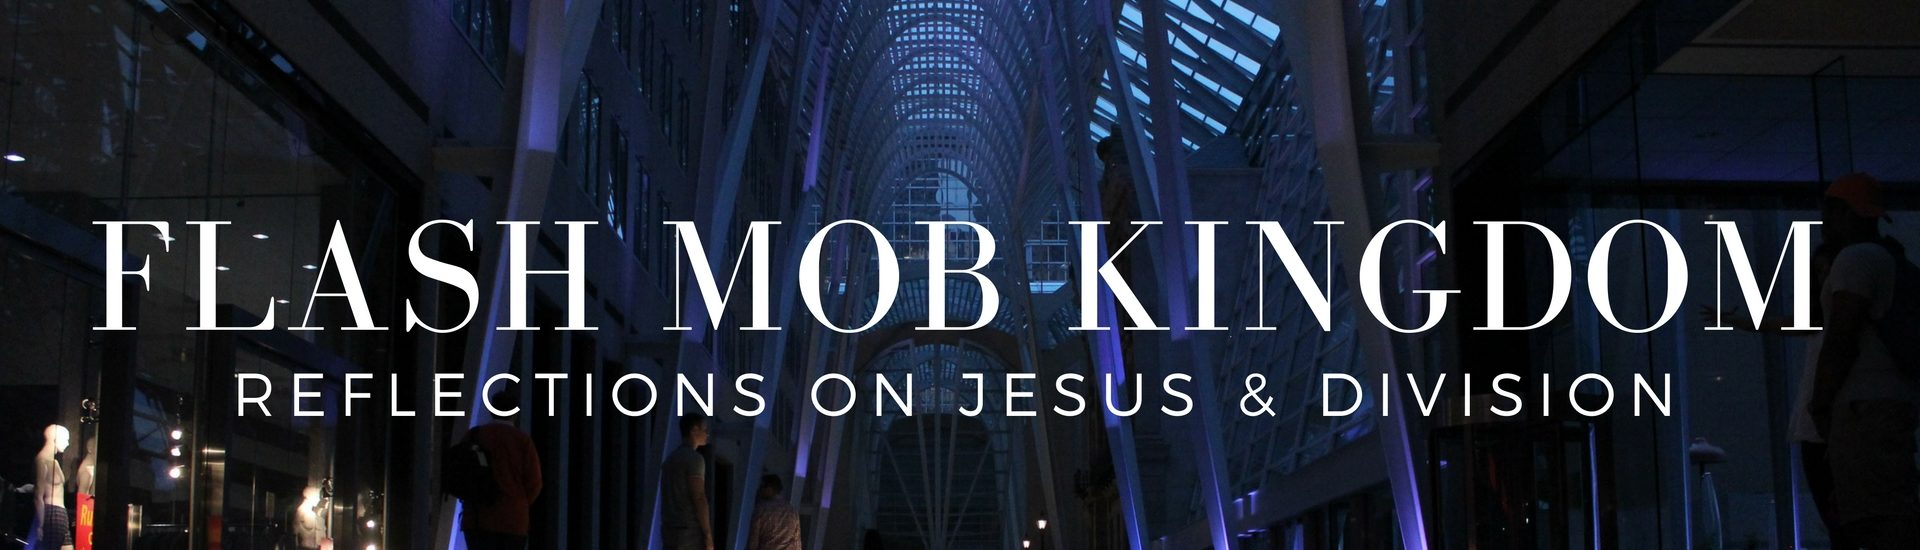 """Reflections on Jesus's claim that he comes to bring """"not peace but division"""" - read on KateRaeDavis.com  Flash Mob Kingdom"""